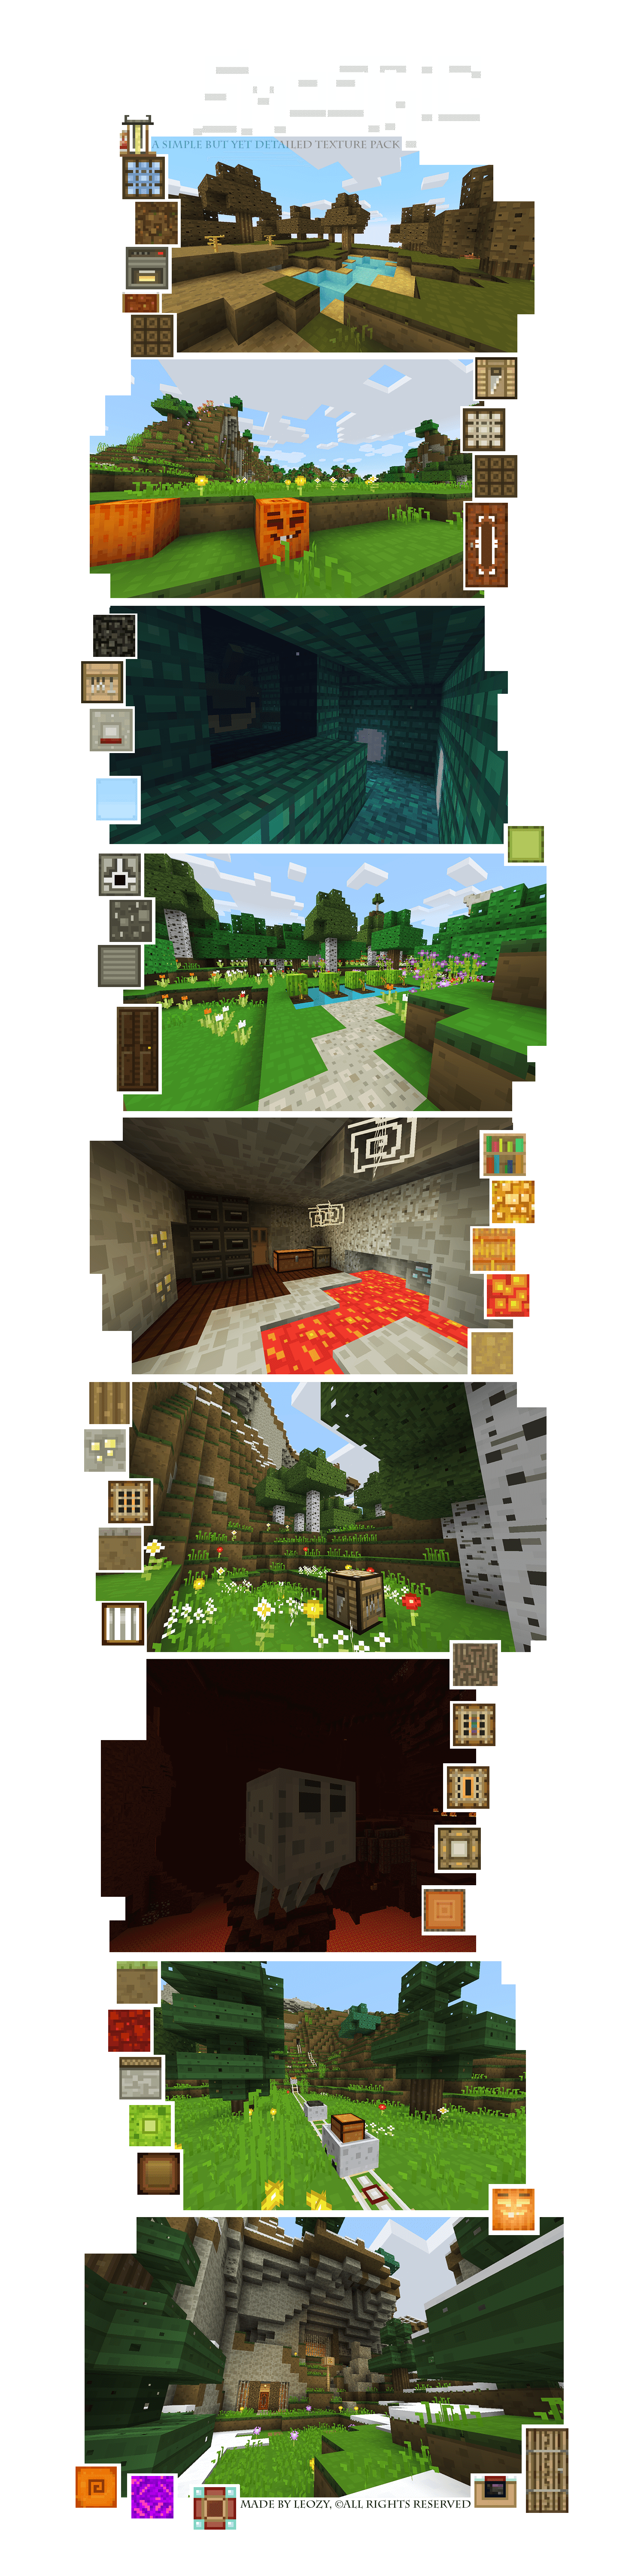 Smoothic Texture Pack Image 1